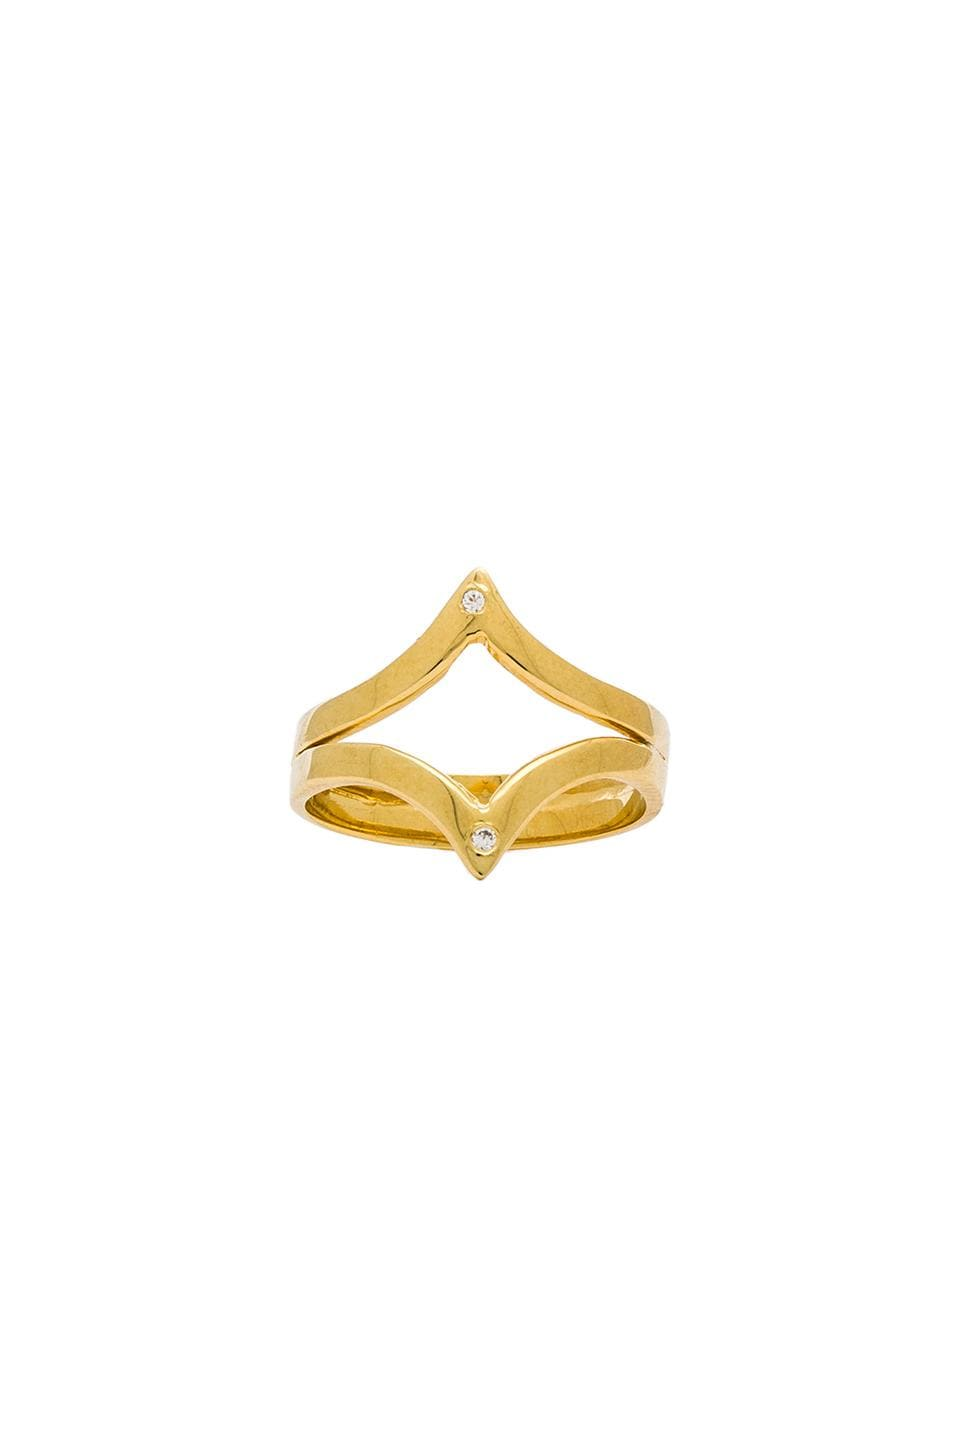 Jacquie Aiche Outward Twin V Ring in Gold